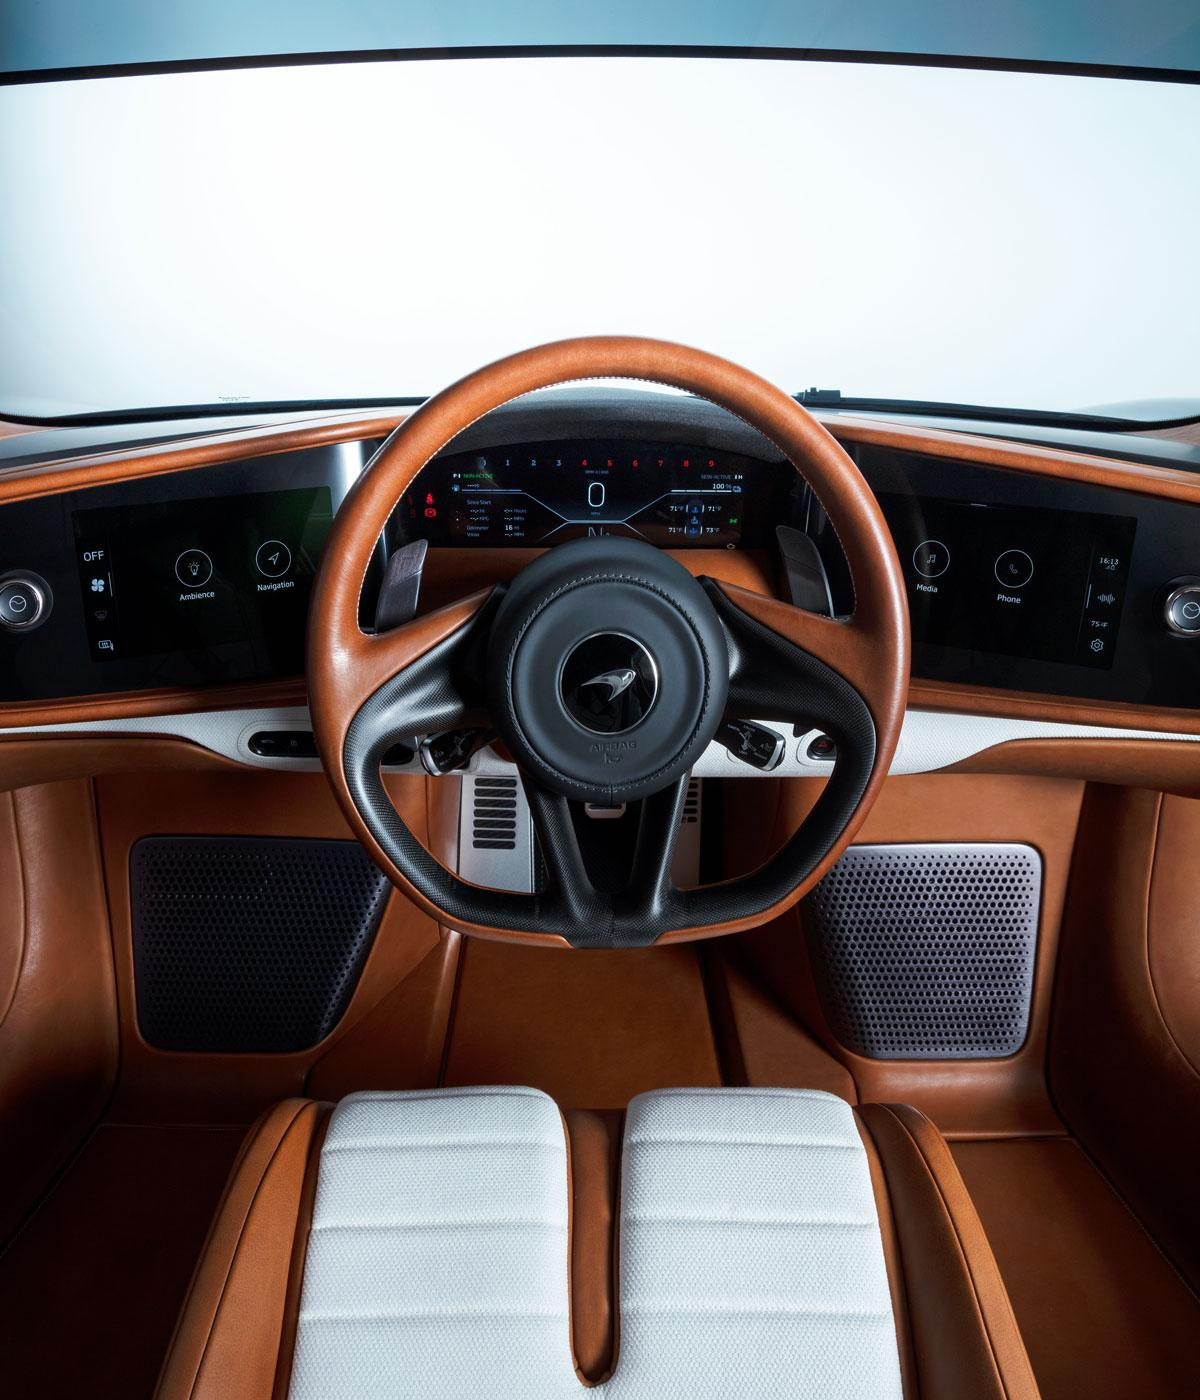 A steering wheel in brown leather in a sports car